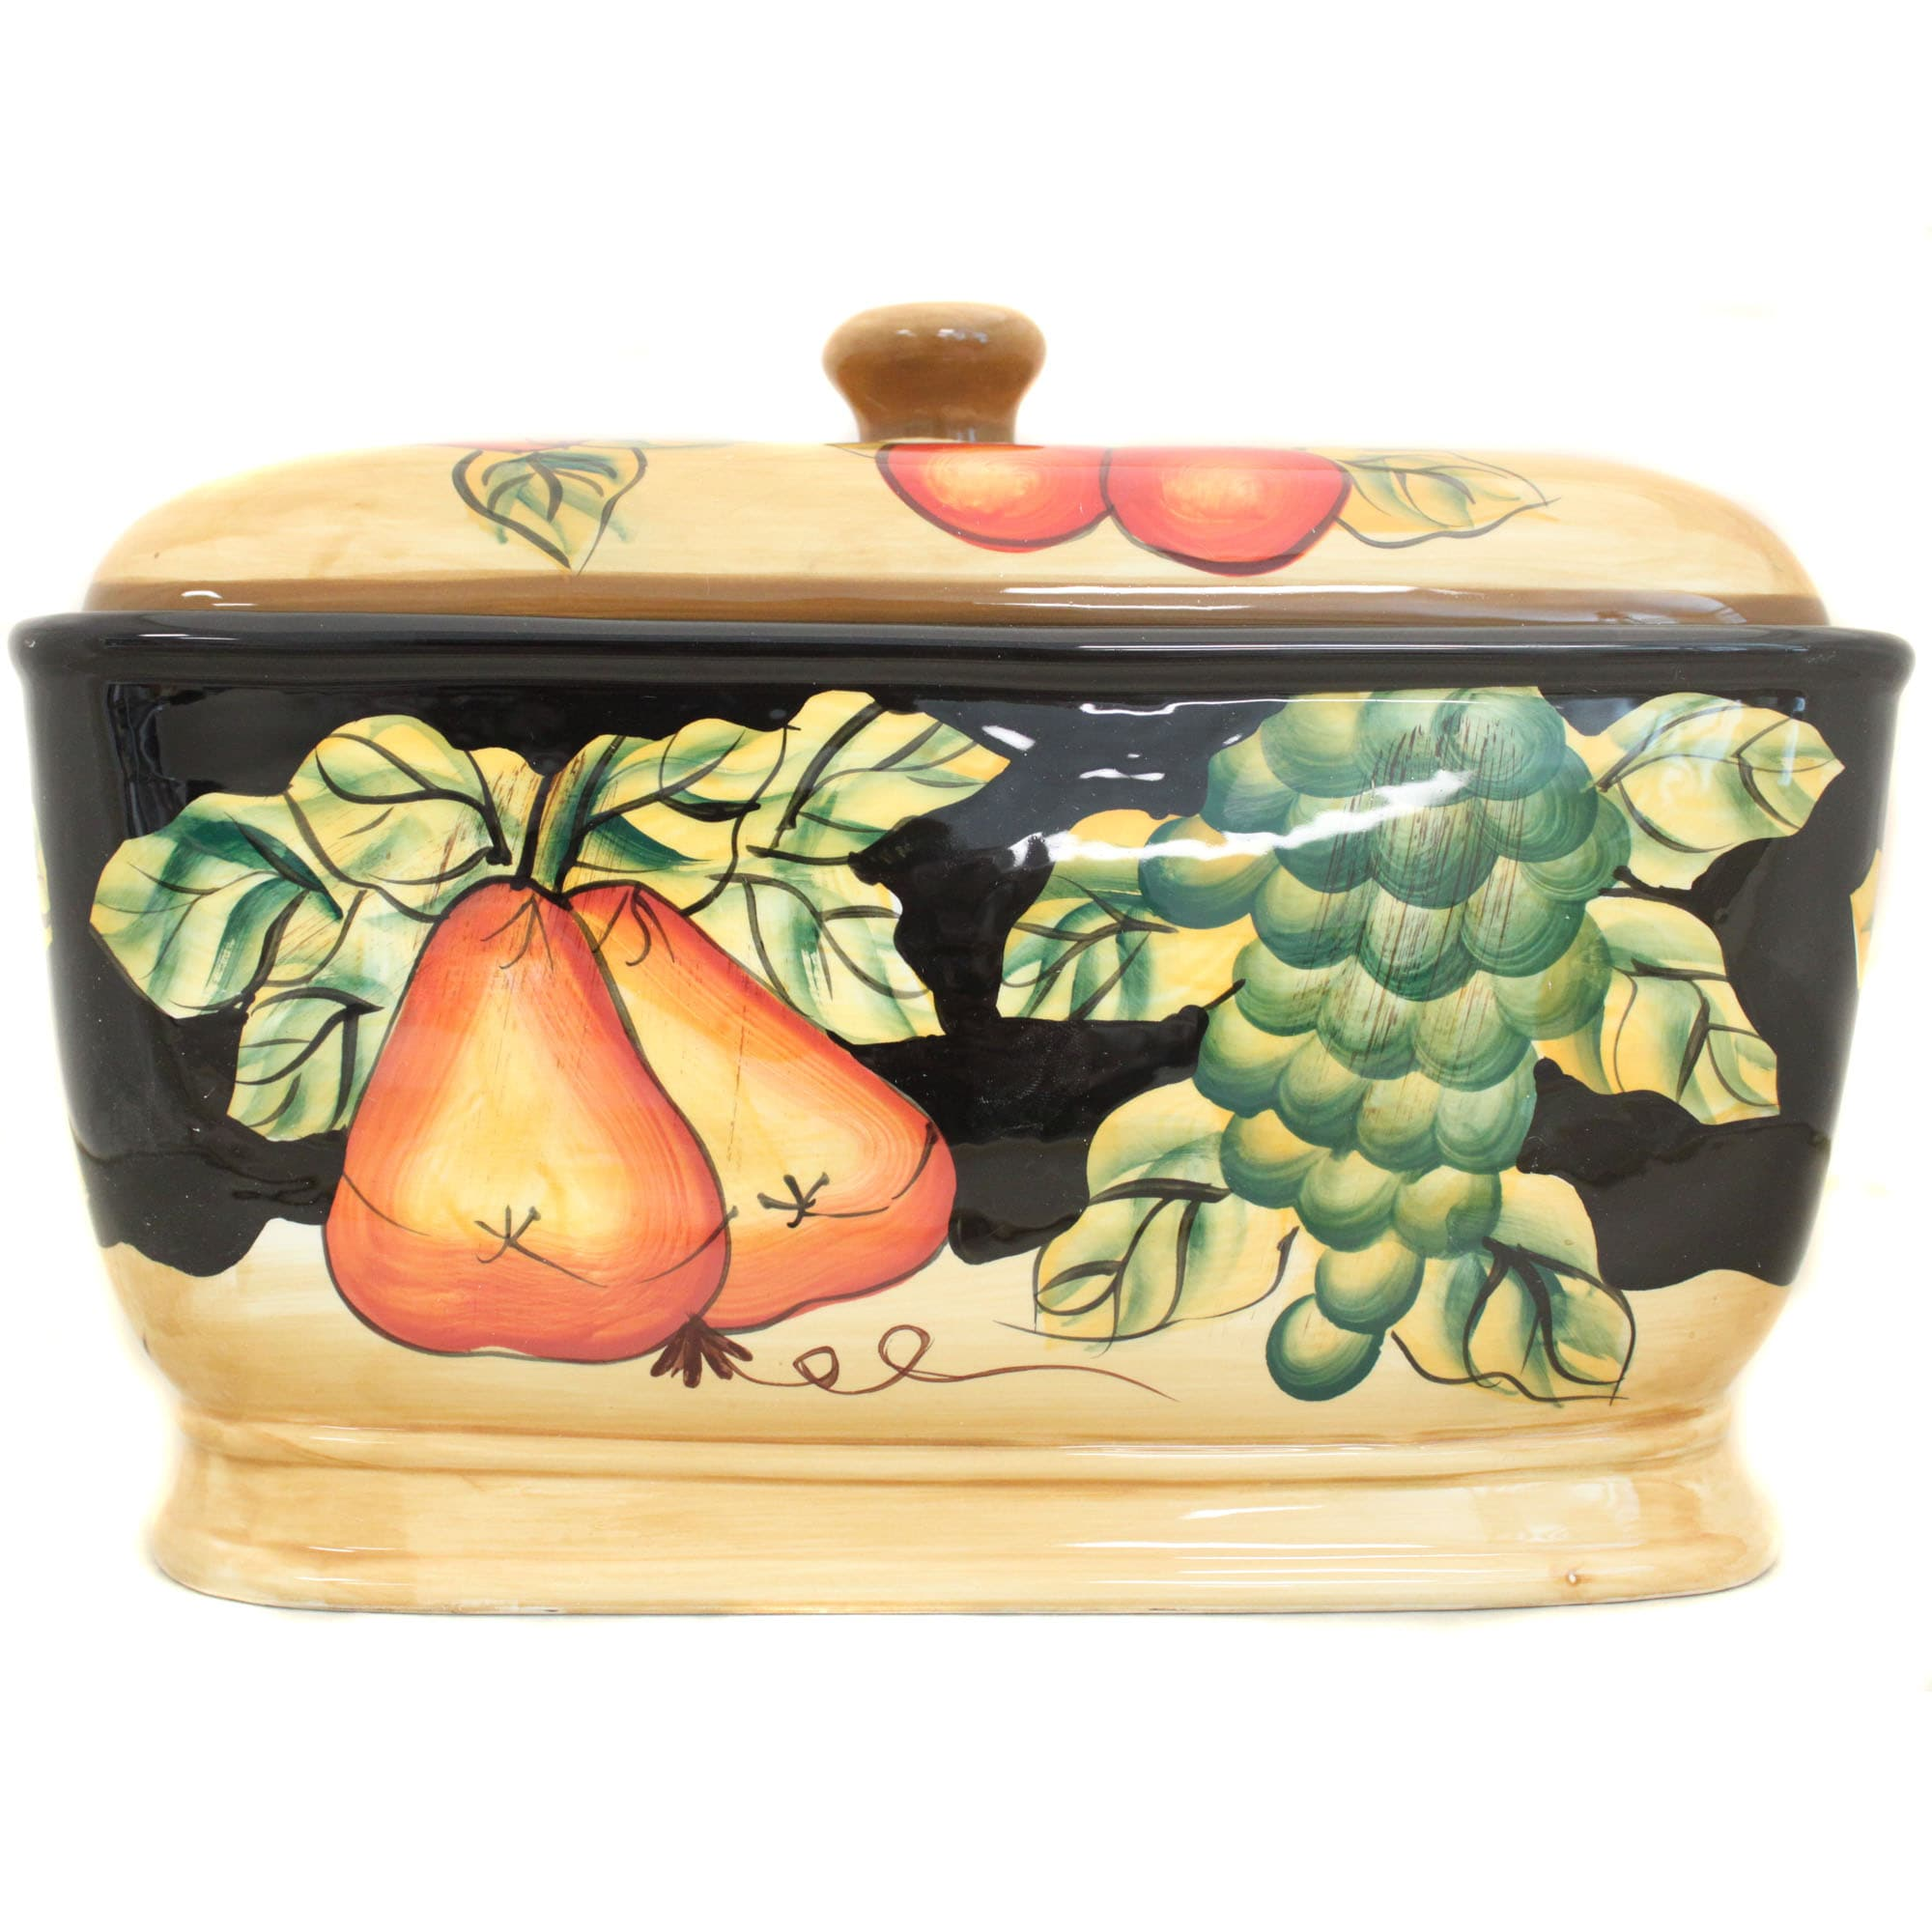 Casa Cortes Barcelona Collection Hand-Painted Bread Box